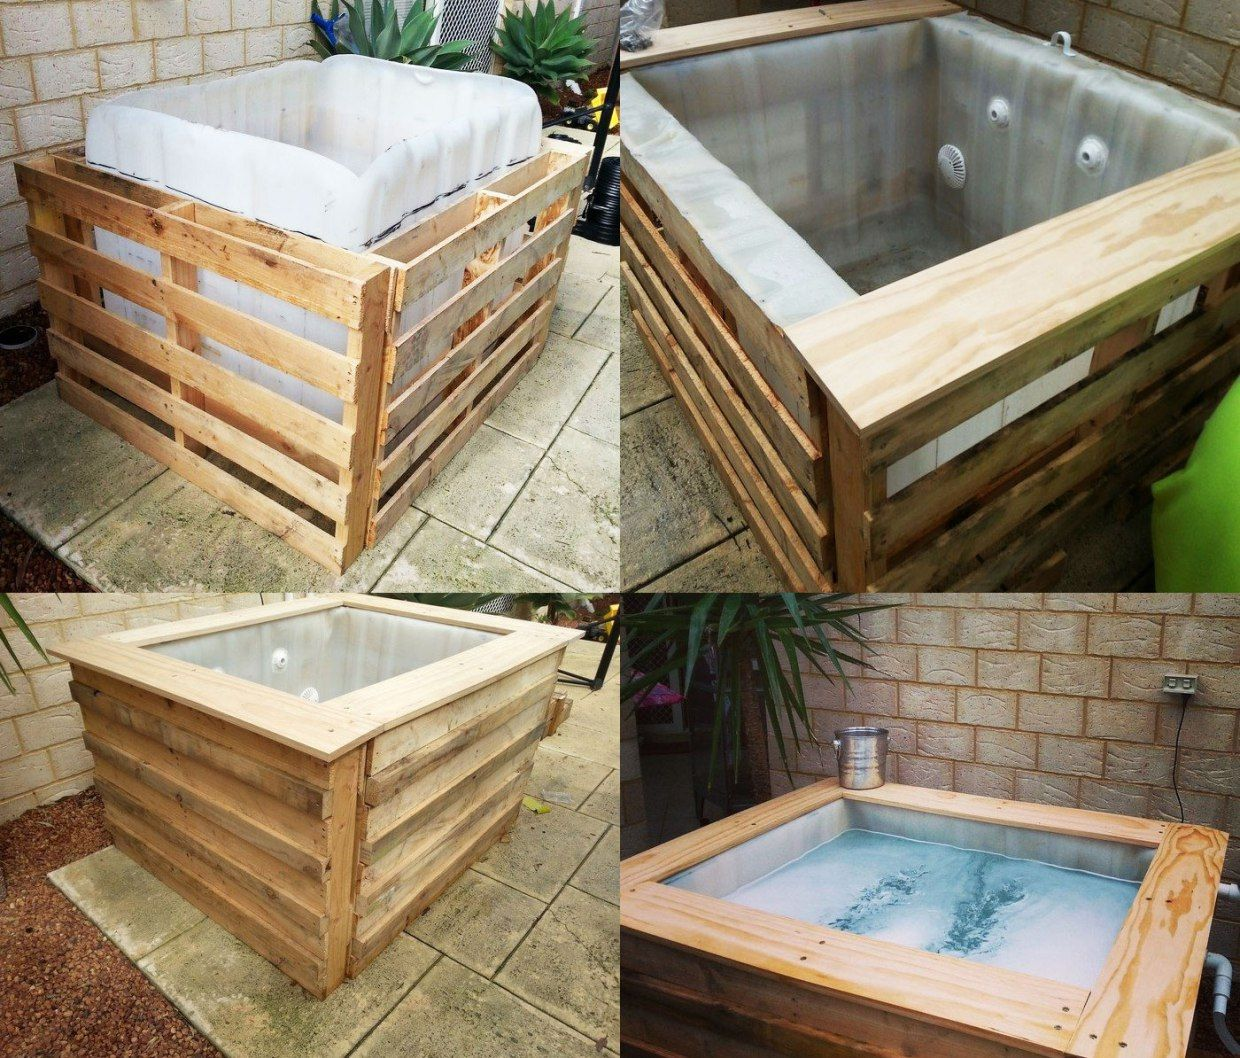 Elektroheizung Pool Diy Homemade Swimming Pool Gallery Hot Tub Homemade